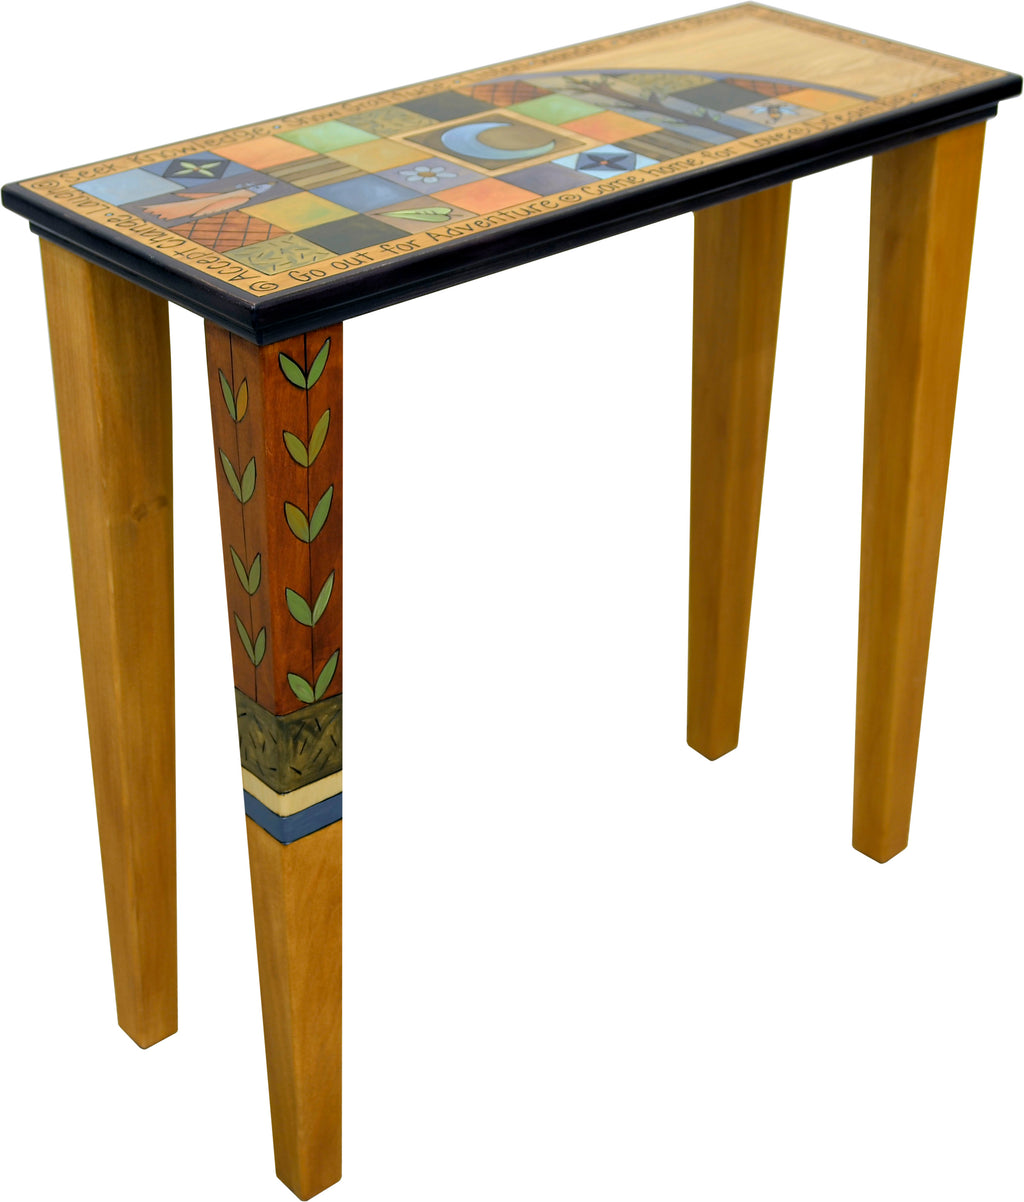 Sticks handmade console table with colorful contemporary grid pattern and vine accent